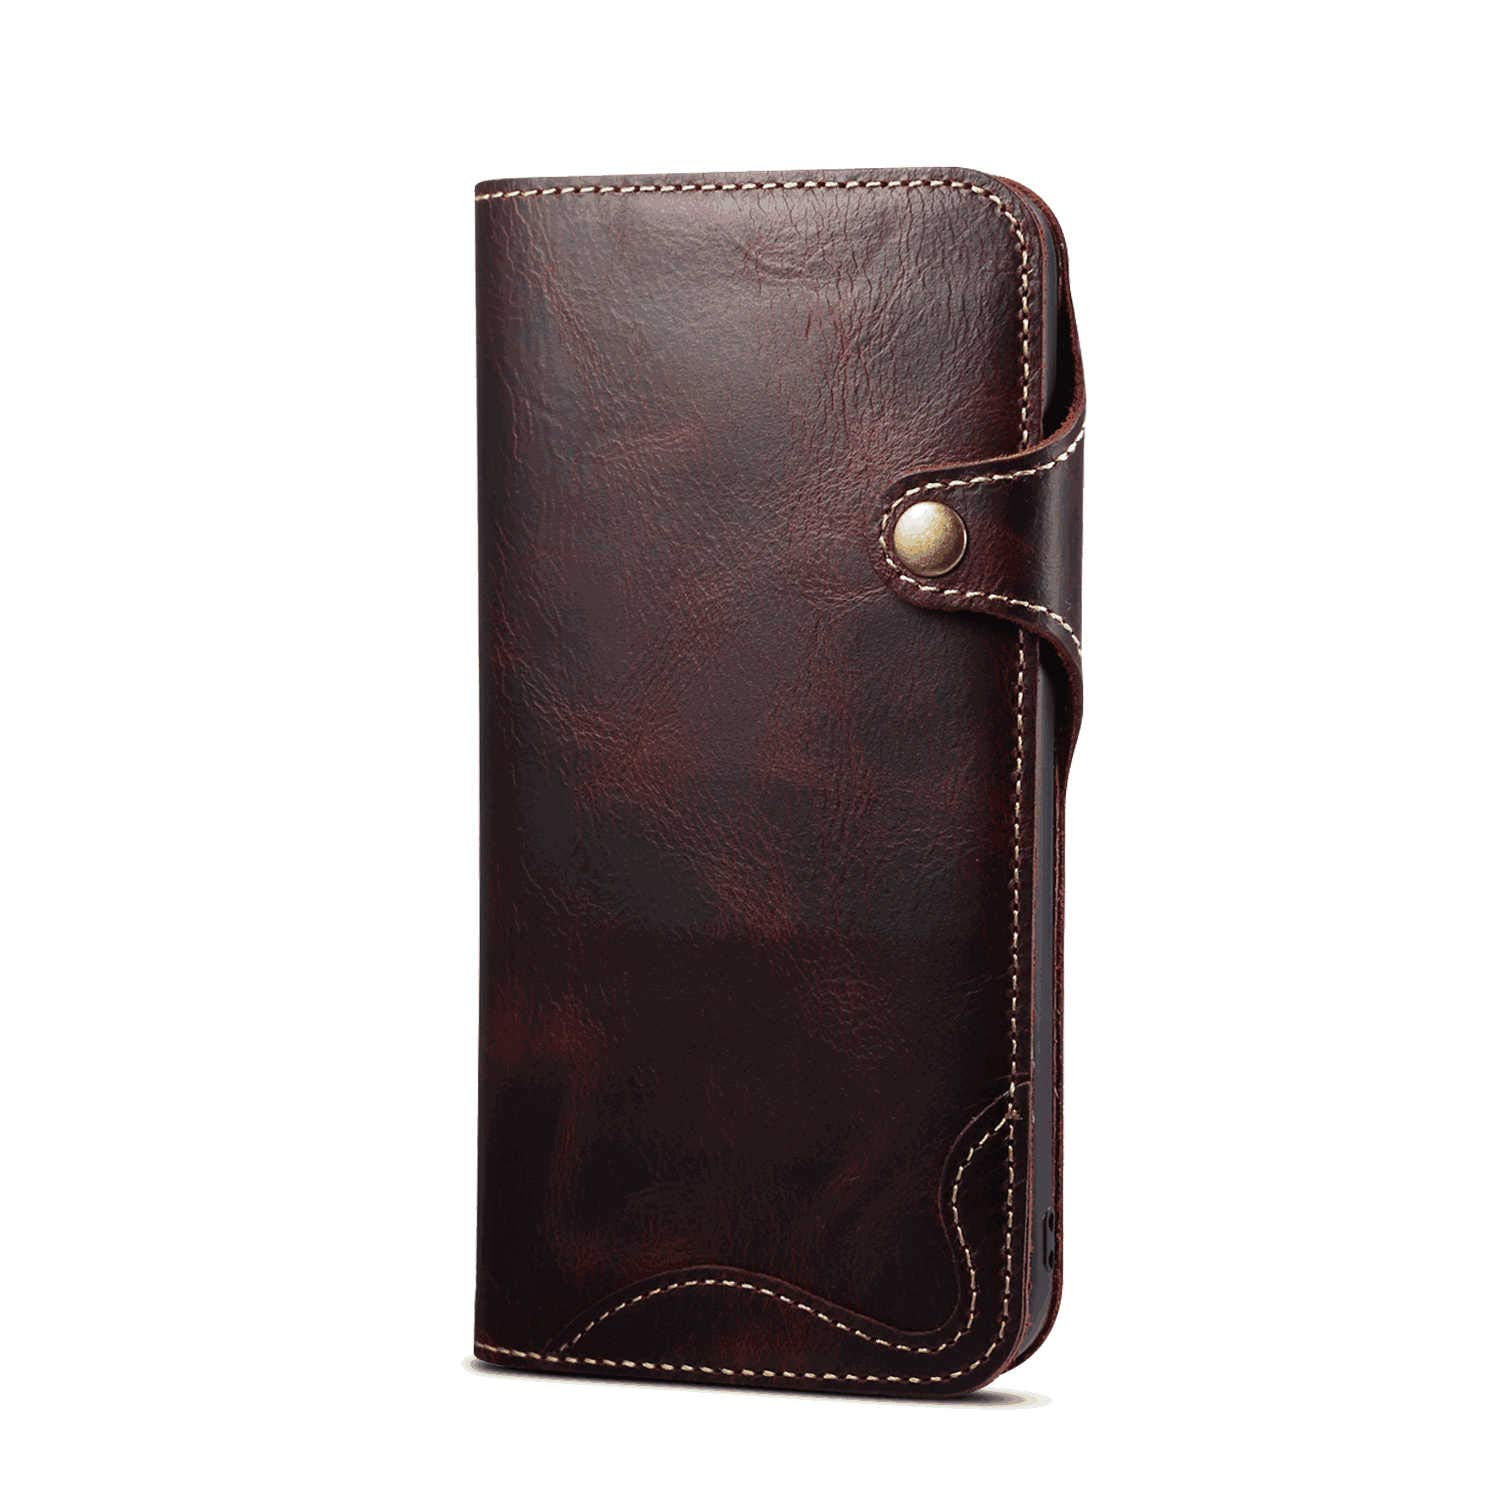 LEATHER FLIP CASE FIT FOR IPHONE 11 PRO PREMIUM CARD HOLDERS KICKSTAND BLUE WALLET COVER FOR IPHONE 11 PRO